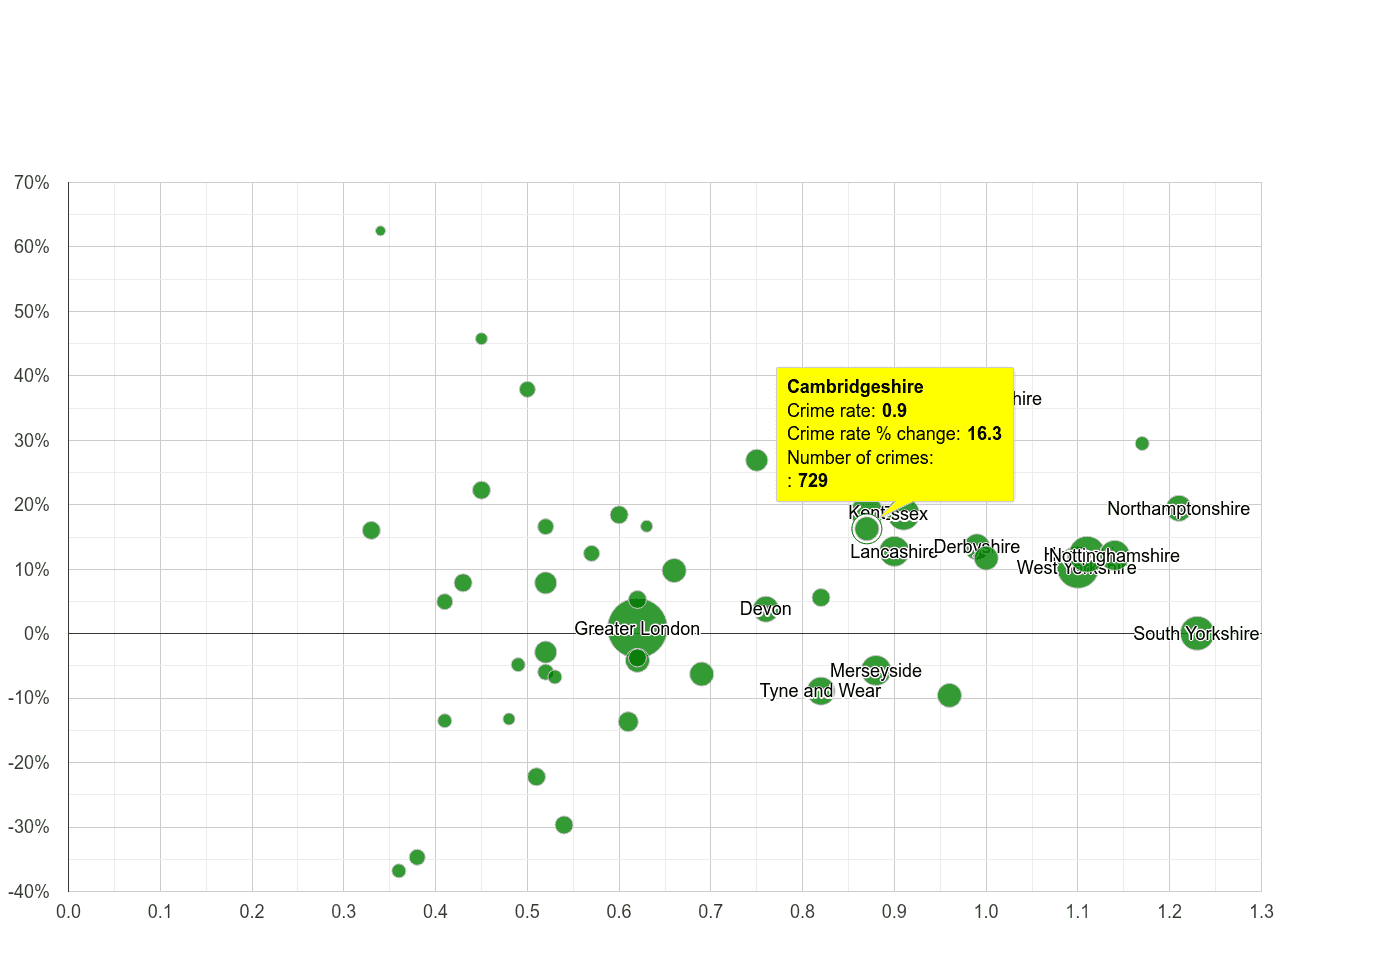 Cambridgeshire possession of weapons crime rate compared to other counties